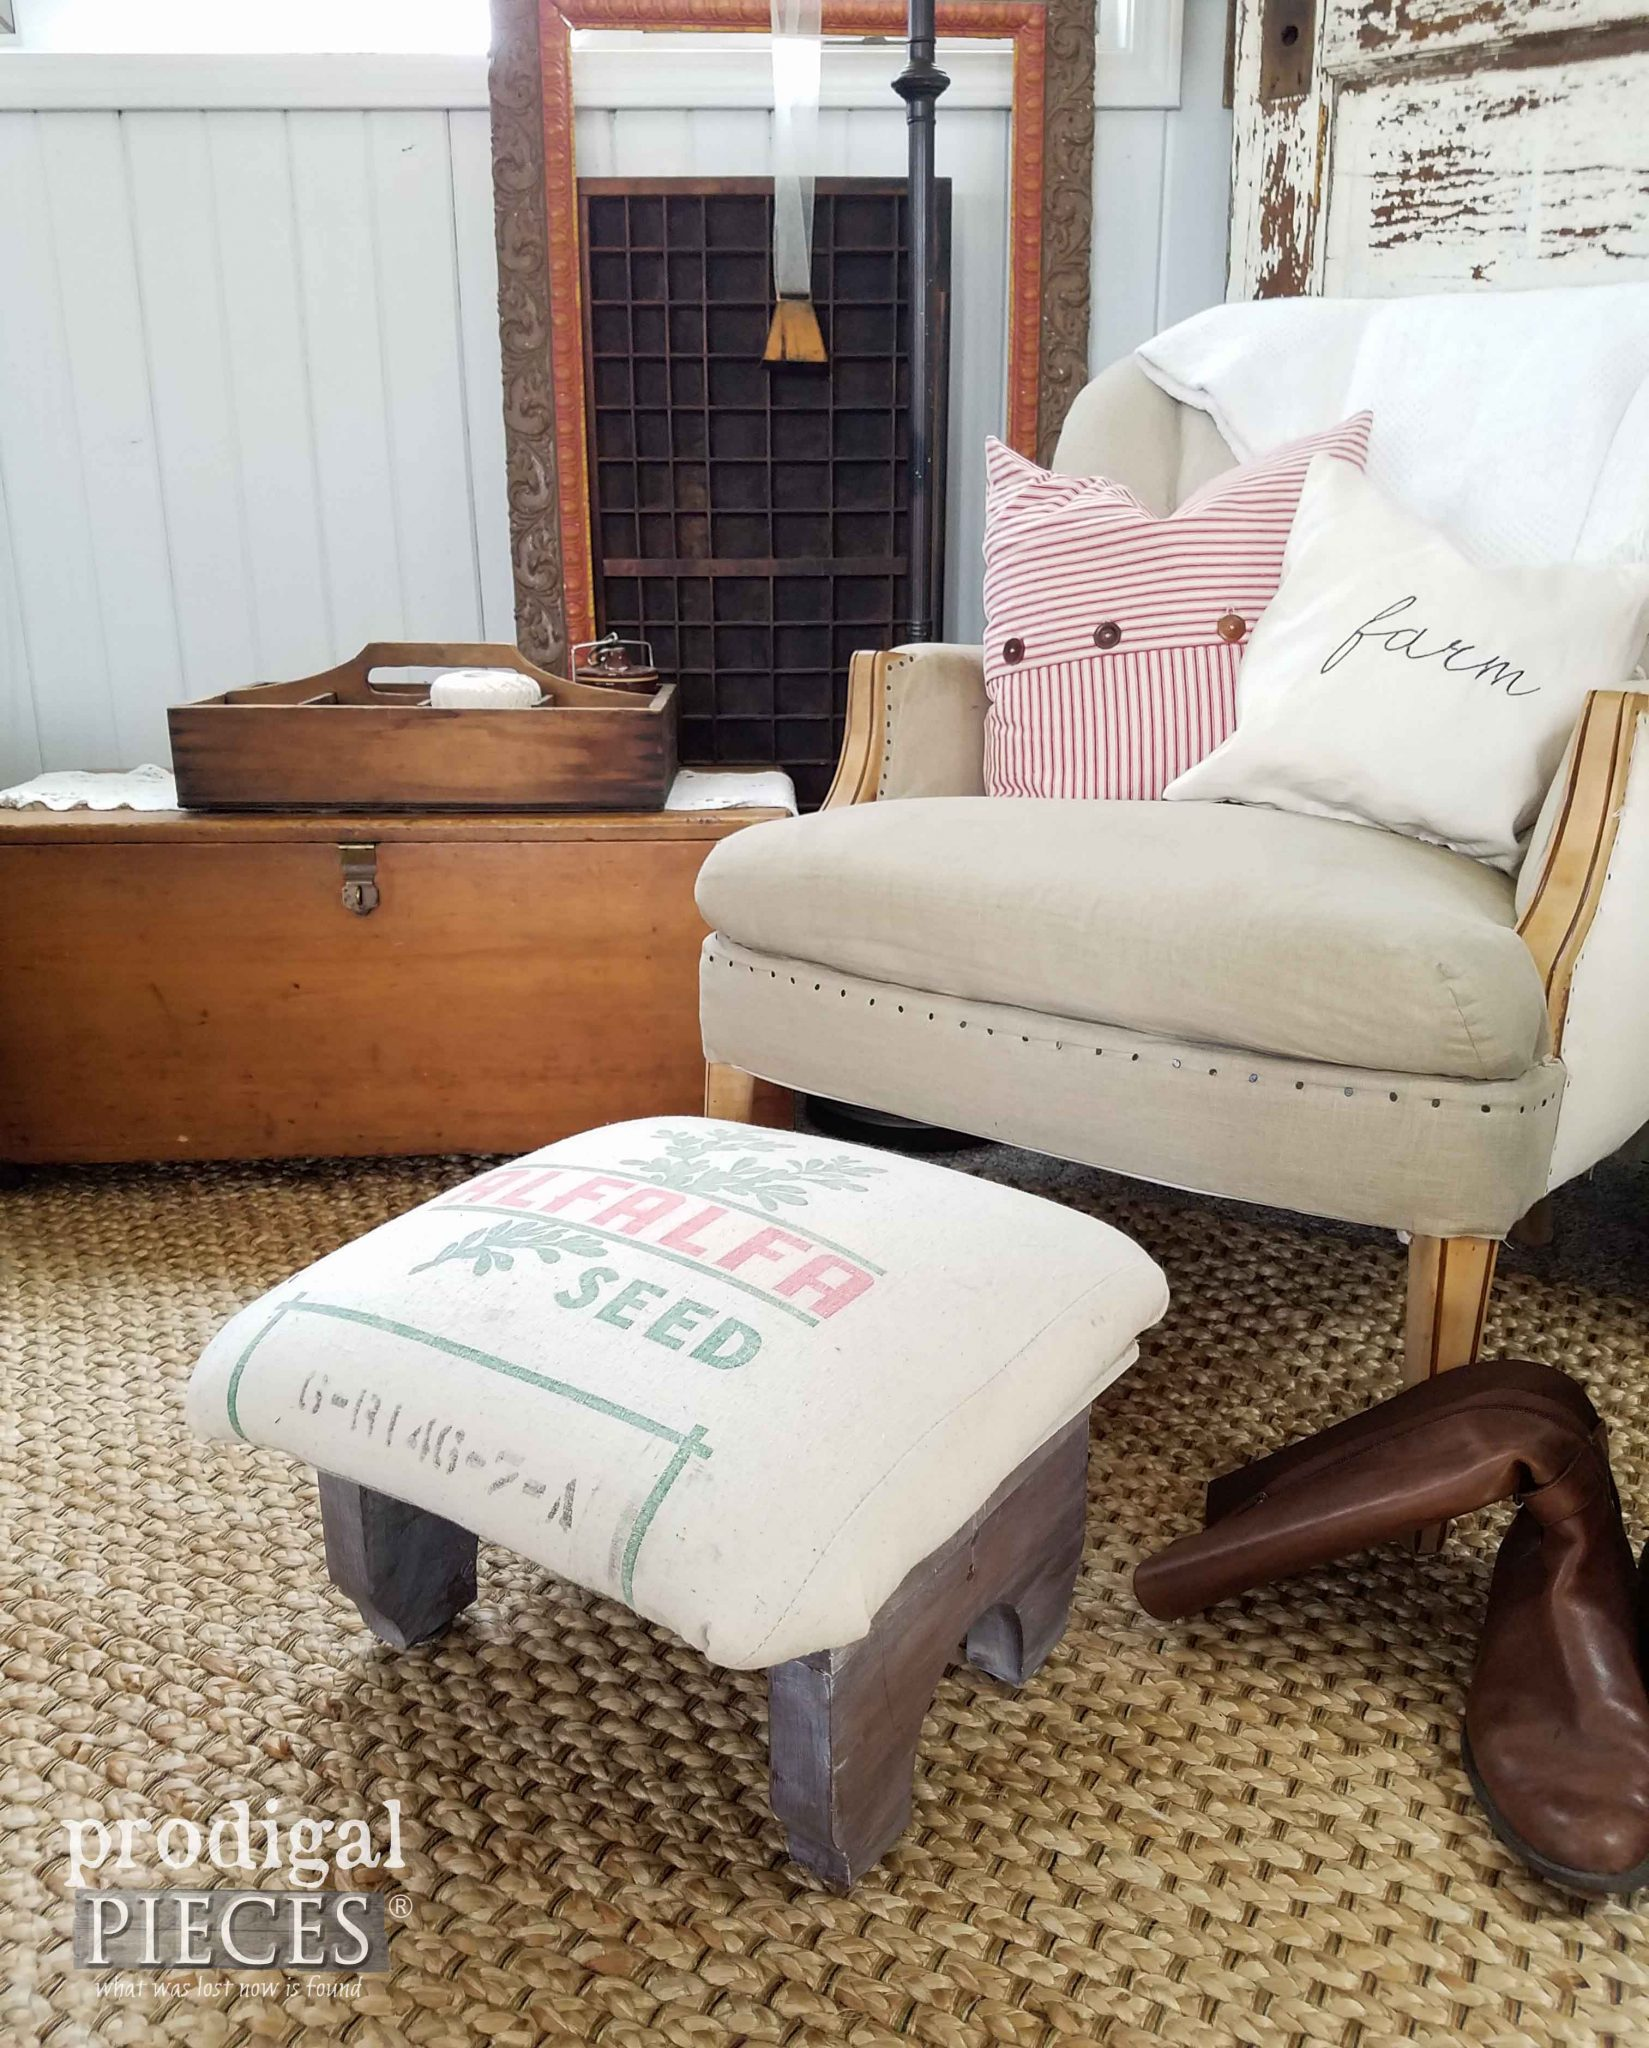 Farmhouse Style Feed Sack Footstool by Prodigal Pieces | prodigalpieces.com